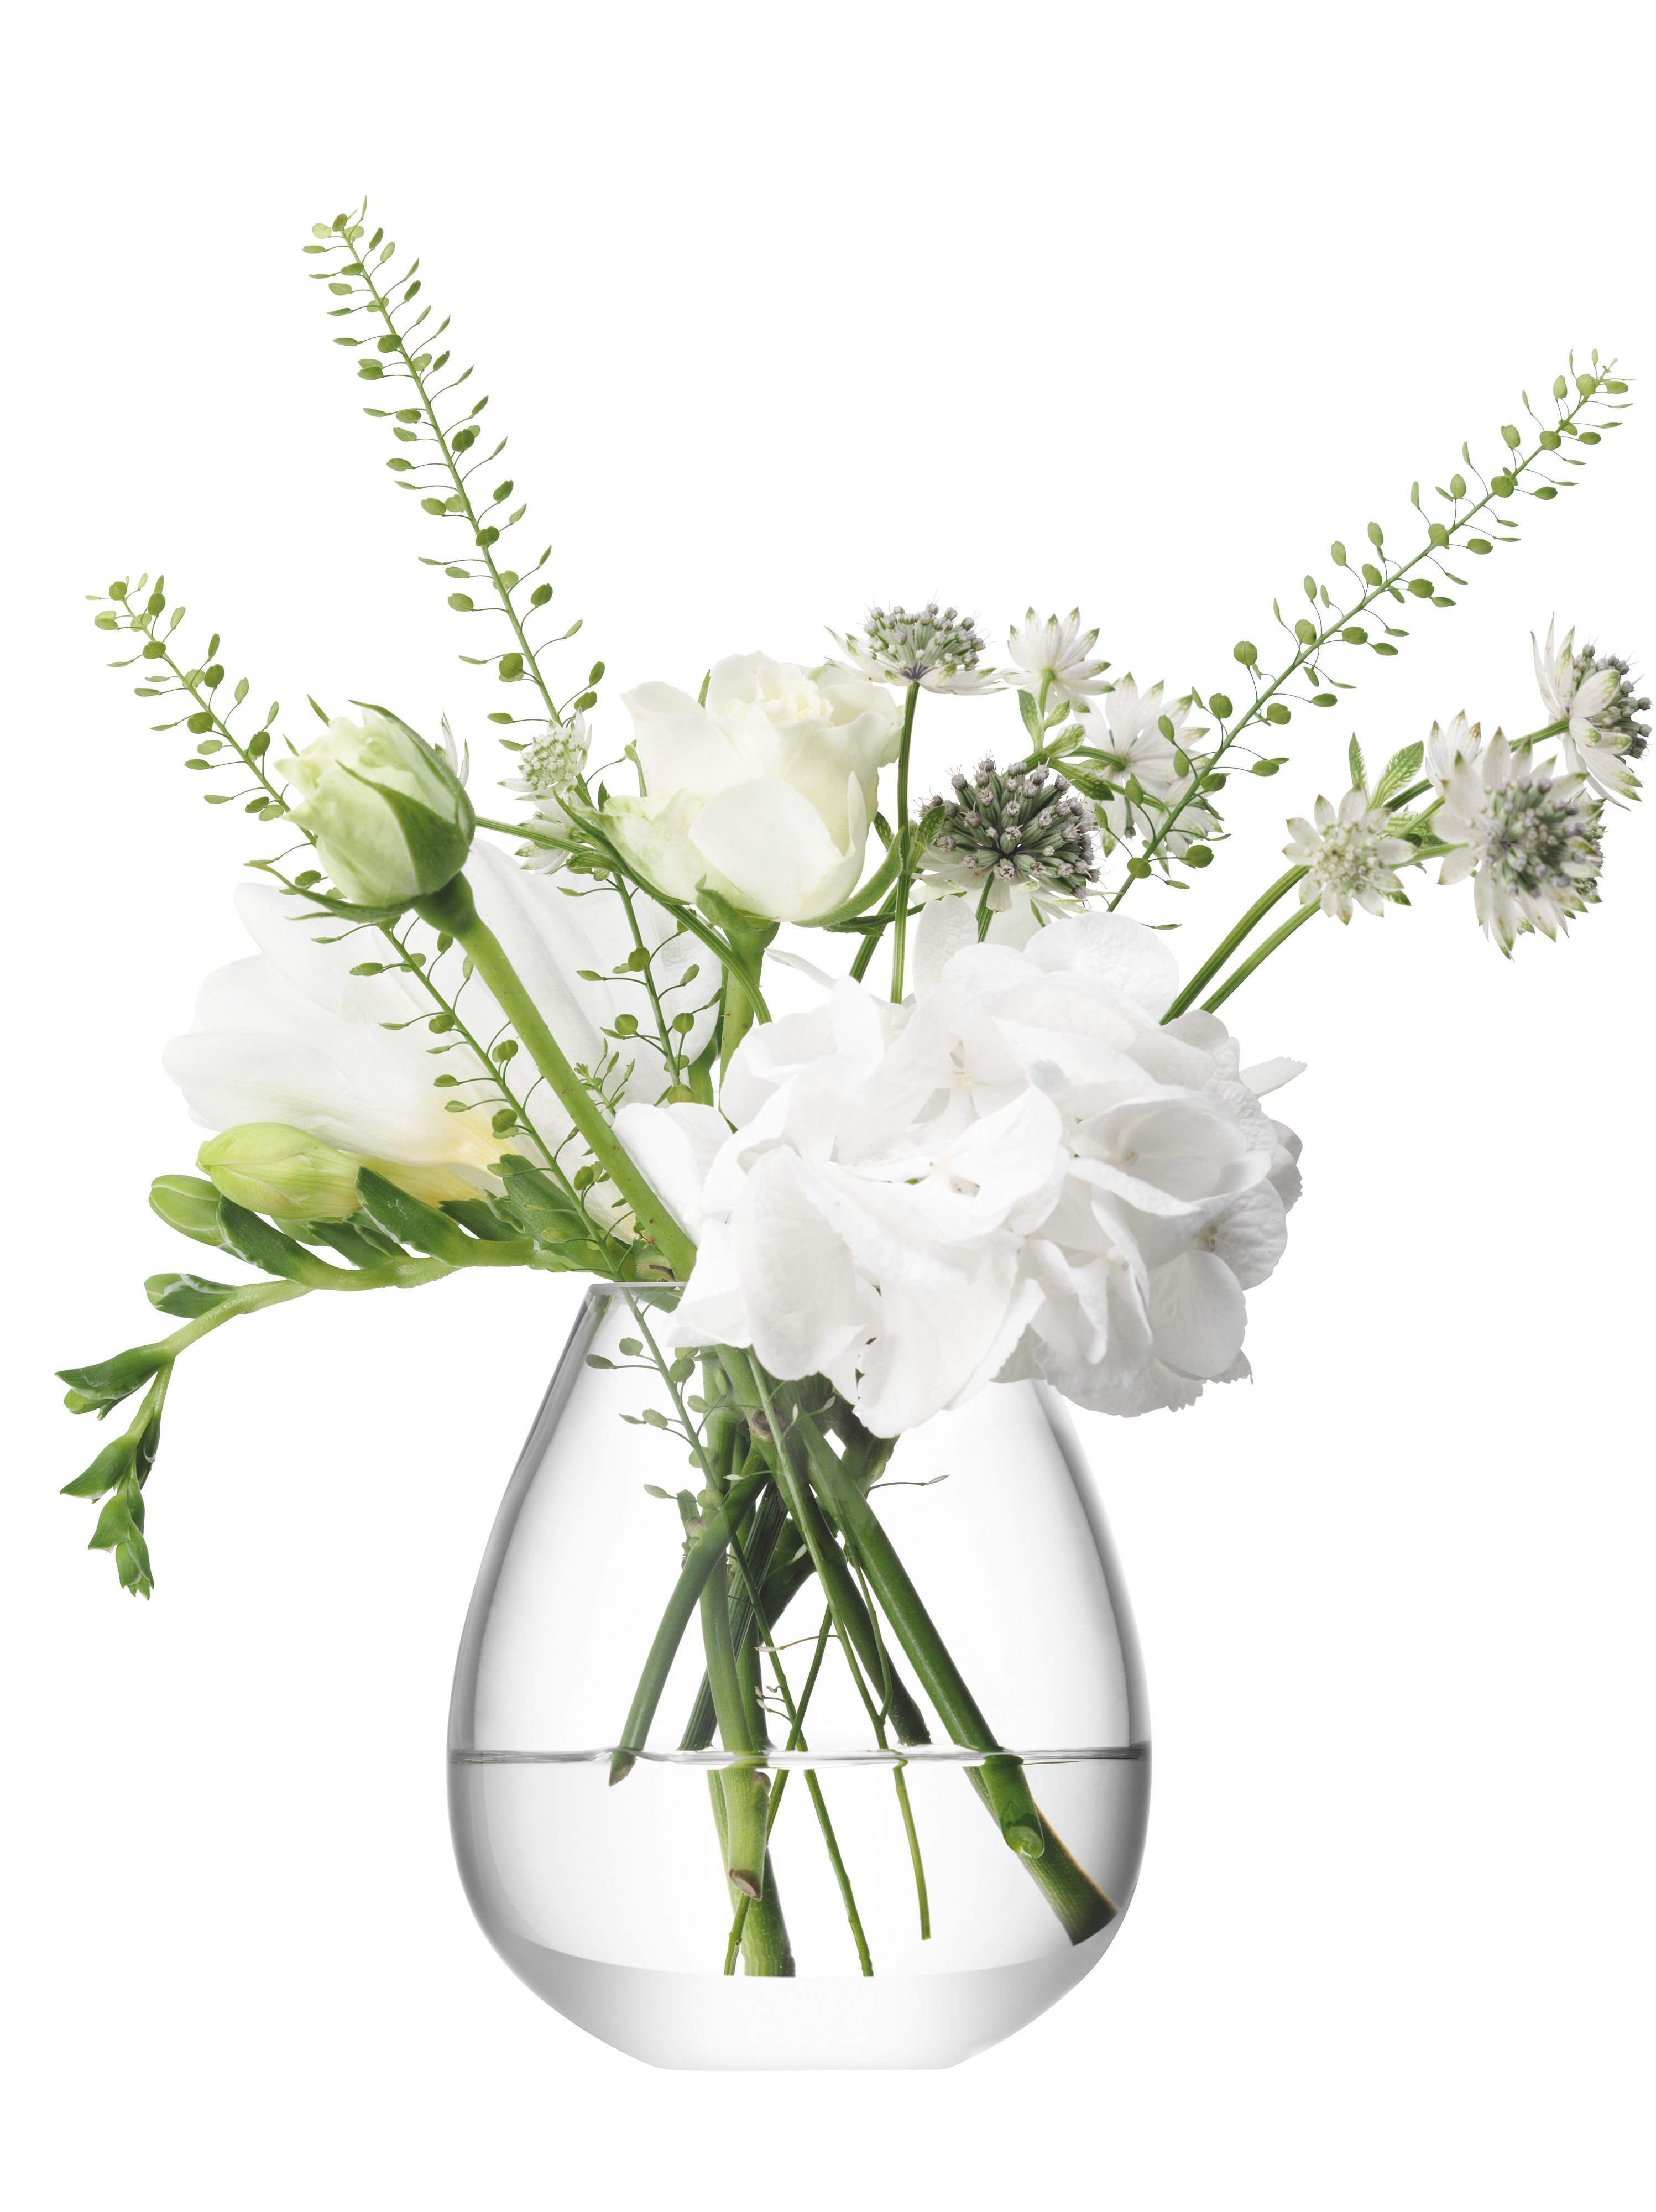 Flower mini table vase height 9.5cm in clear